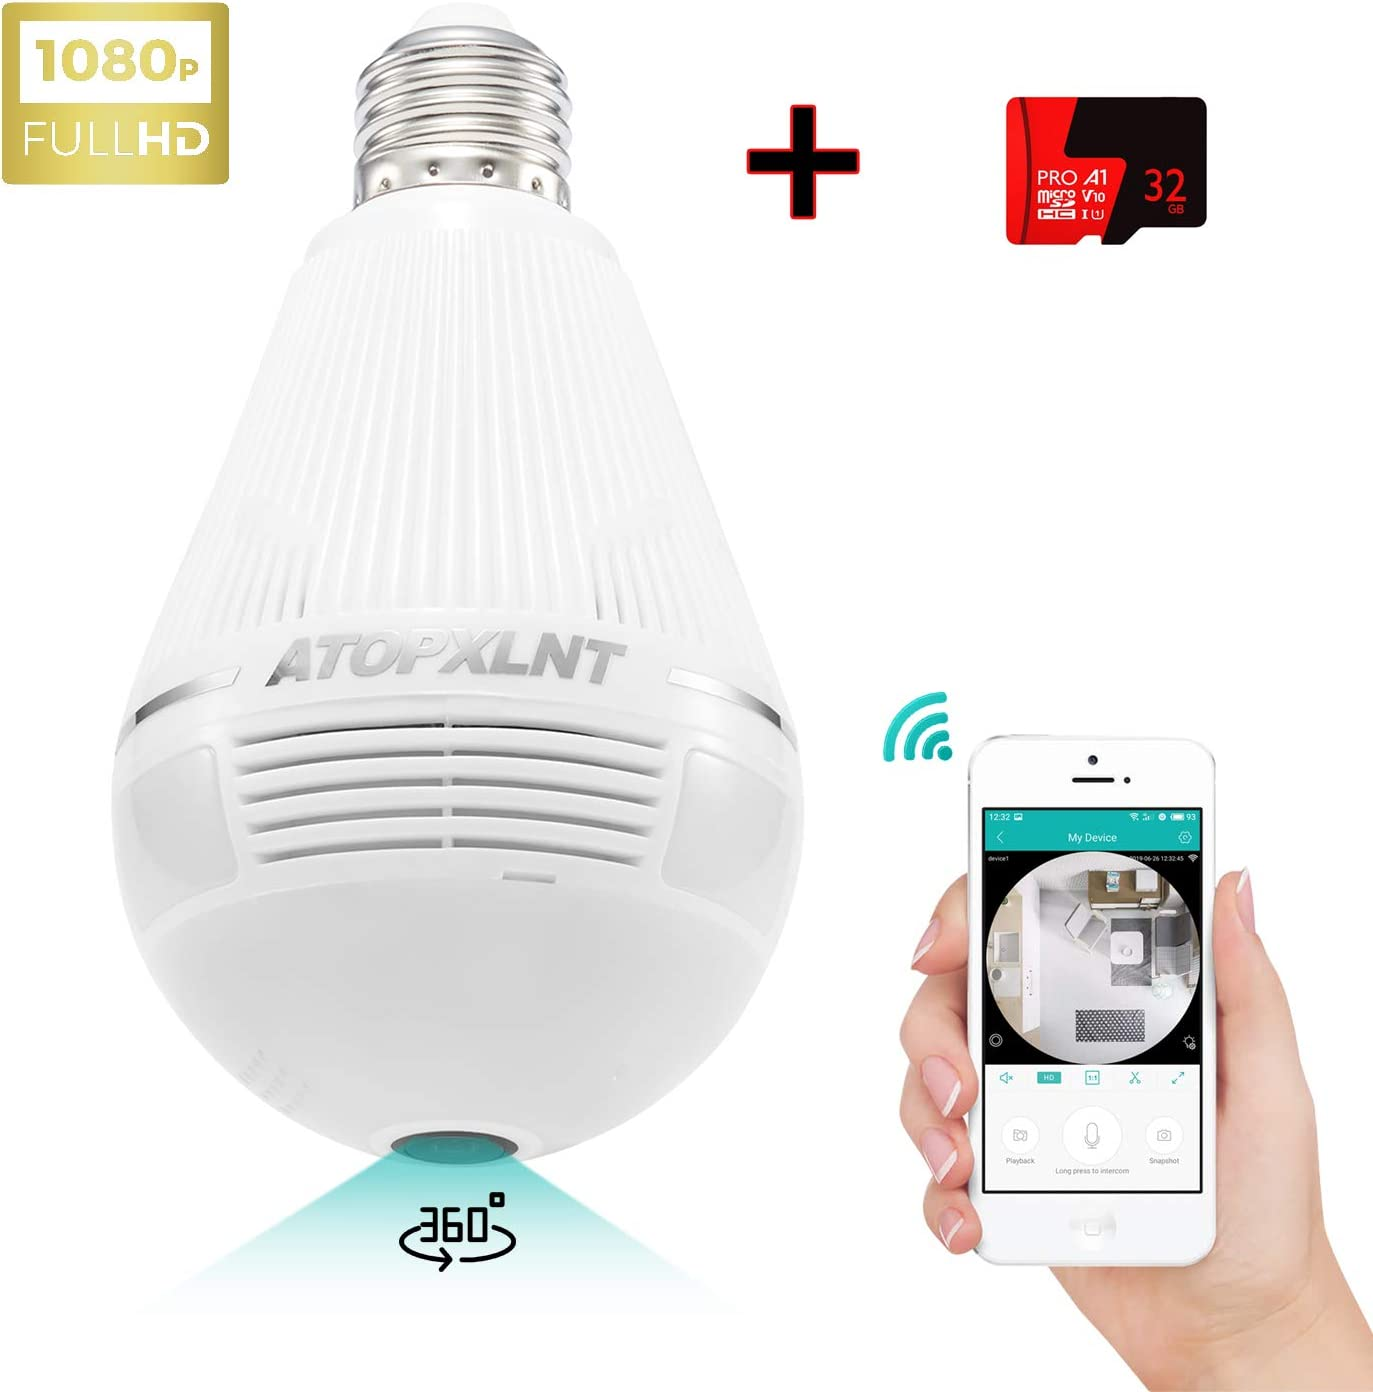 ATOPXLNT Light Bulb Camera WiFi Outdoor Indoor Panoramic IP Security Surveillance System 360 Degree Smart 3D VR 1080P HD Home Camera 2MP Wireless LED Night Vision Cam Motion Detection with 32G SD Card